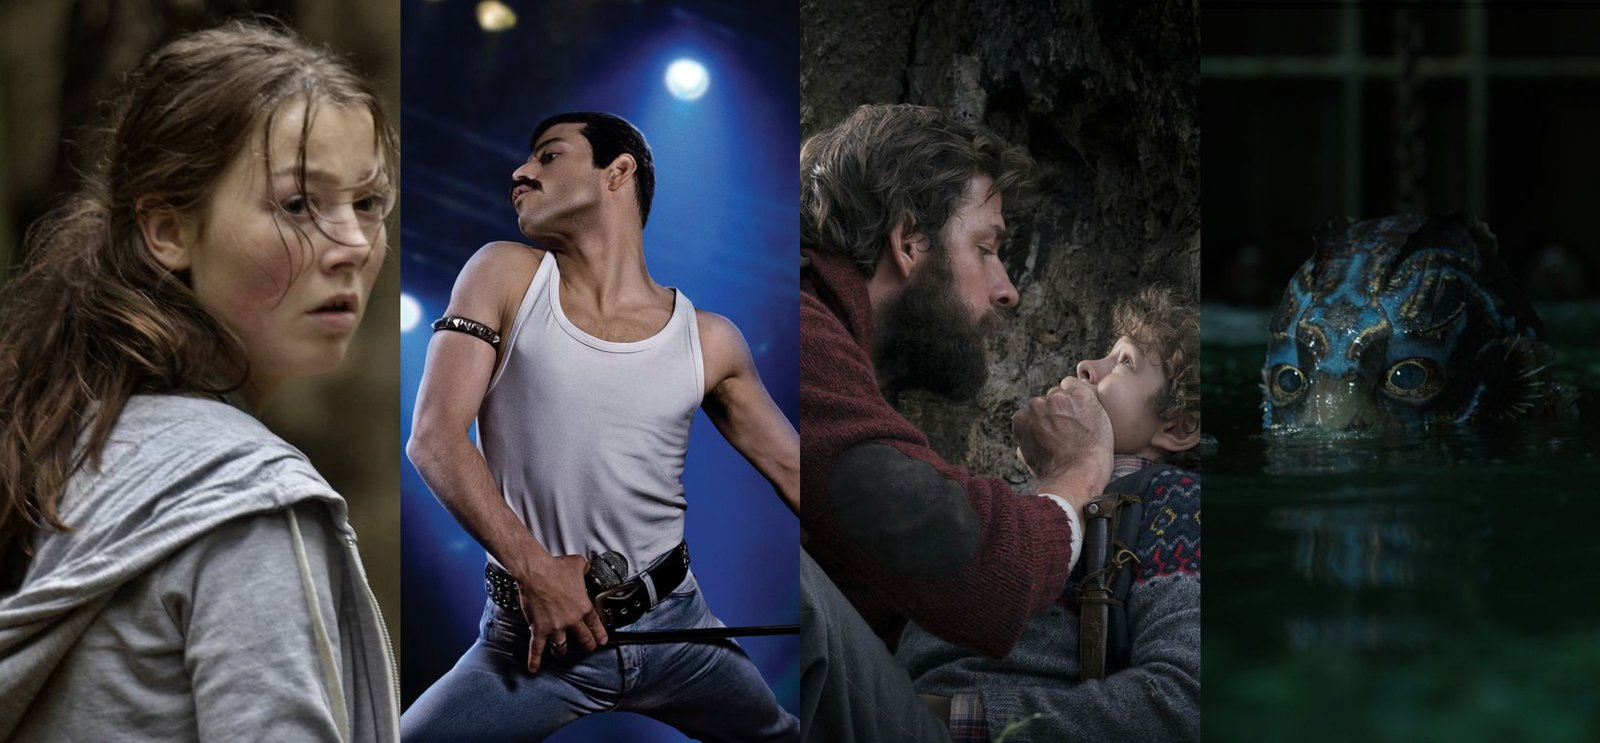 Utoya, 22. July, Bohemian Rhapsody, A Quiet Place, The Shape of Water, Ūteija, 22. jūlijs, Bohēmista rapsodija, Klusā pasaule, Ūdens forma